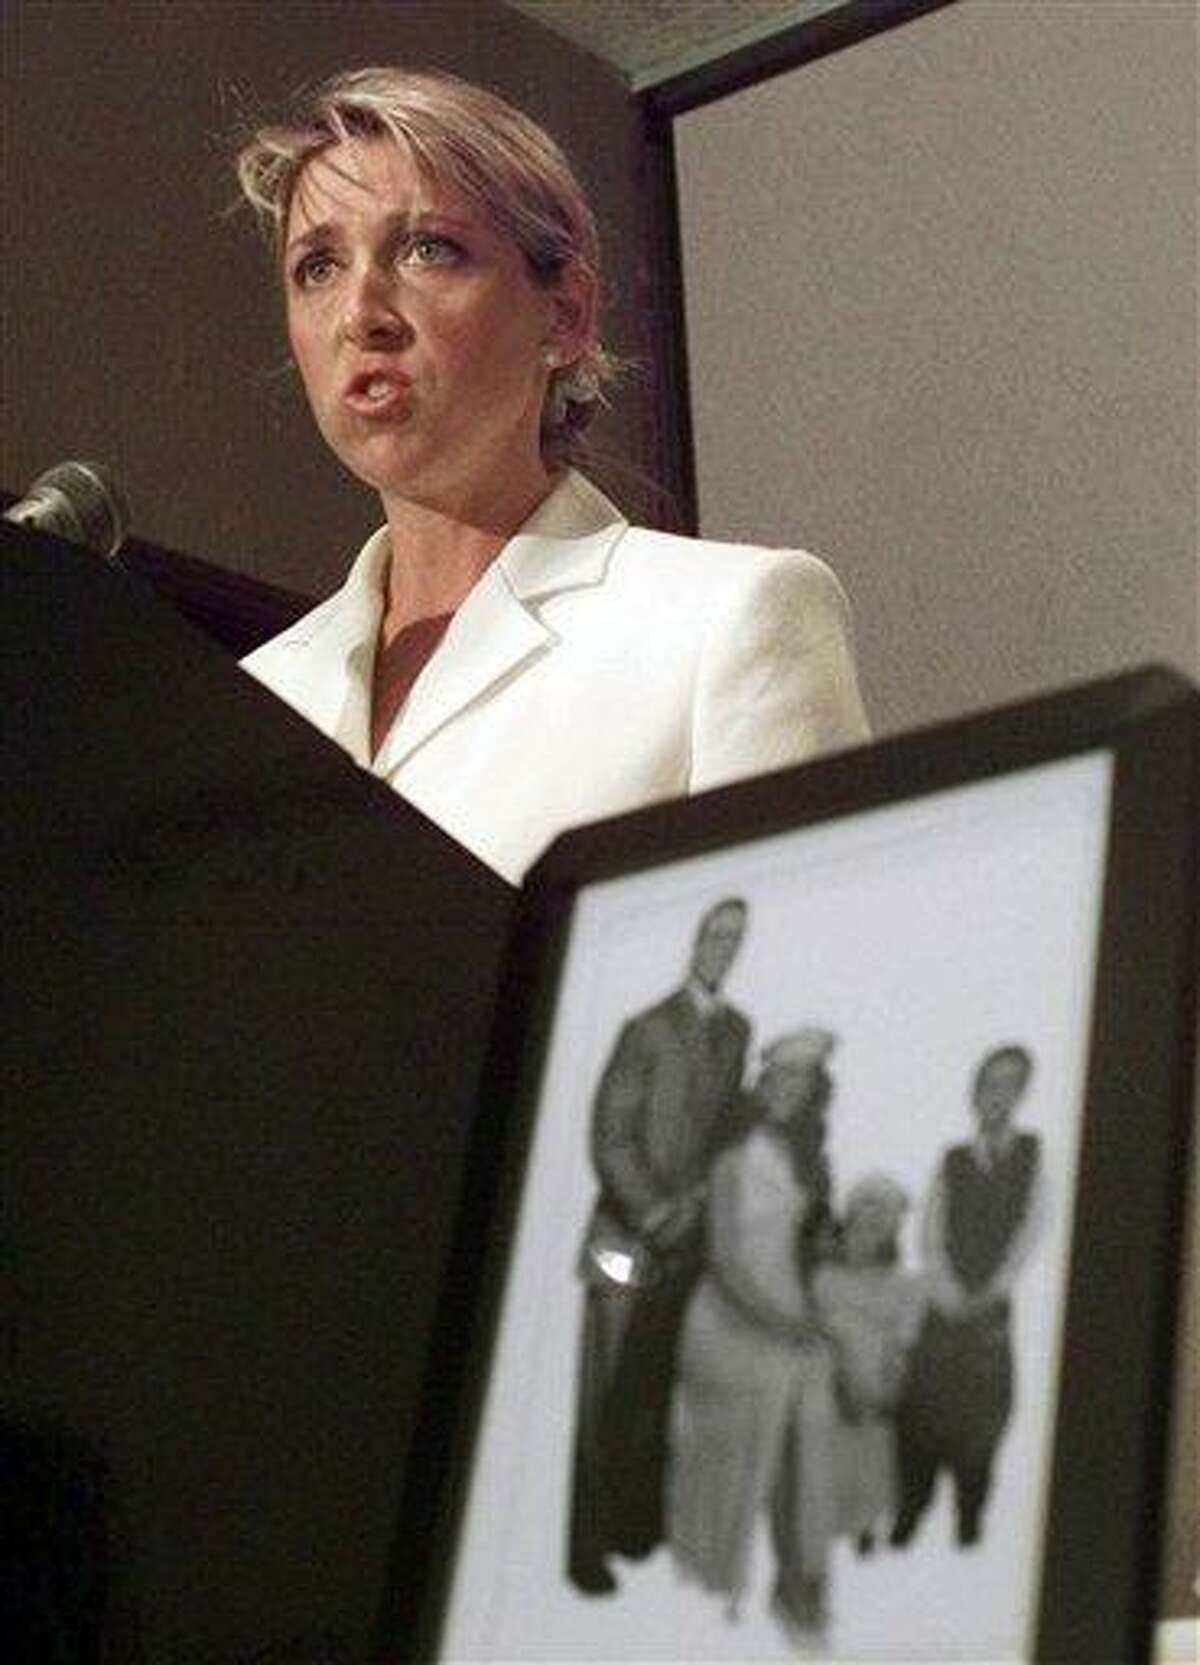 FILE - In this June 15, 1999 file photo, Martha Hart, widow of the late professional wrestler Owen Hart, announces that her family has filed a wrongful death lawsuit against the World Wrestling Federation in Kansas City, Mo., as a photo of the Harts and their two children sits in the foreground. Hart says she's suing the Connecticut-based World Wrestling Entertainment and its leaders, including Republican U.S. Senate candidate Linda McMahon, because they kept using her husband's image to promote the business despite agreeing to stop after his death. Hart plans to file her lawsuit Tuesday, June 22, 2010, in U.S. District Court in Hartford. (AP Photo/Cliff Schiappa, File)